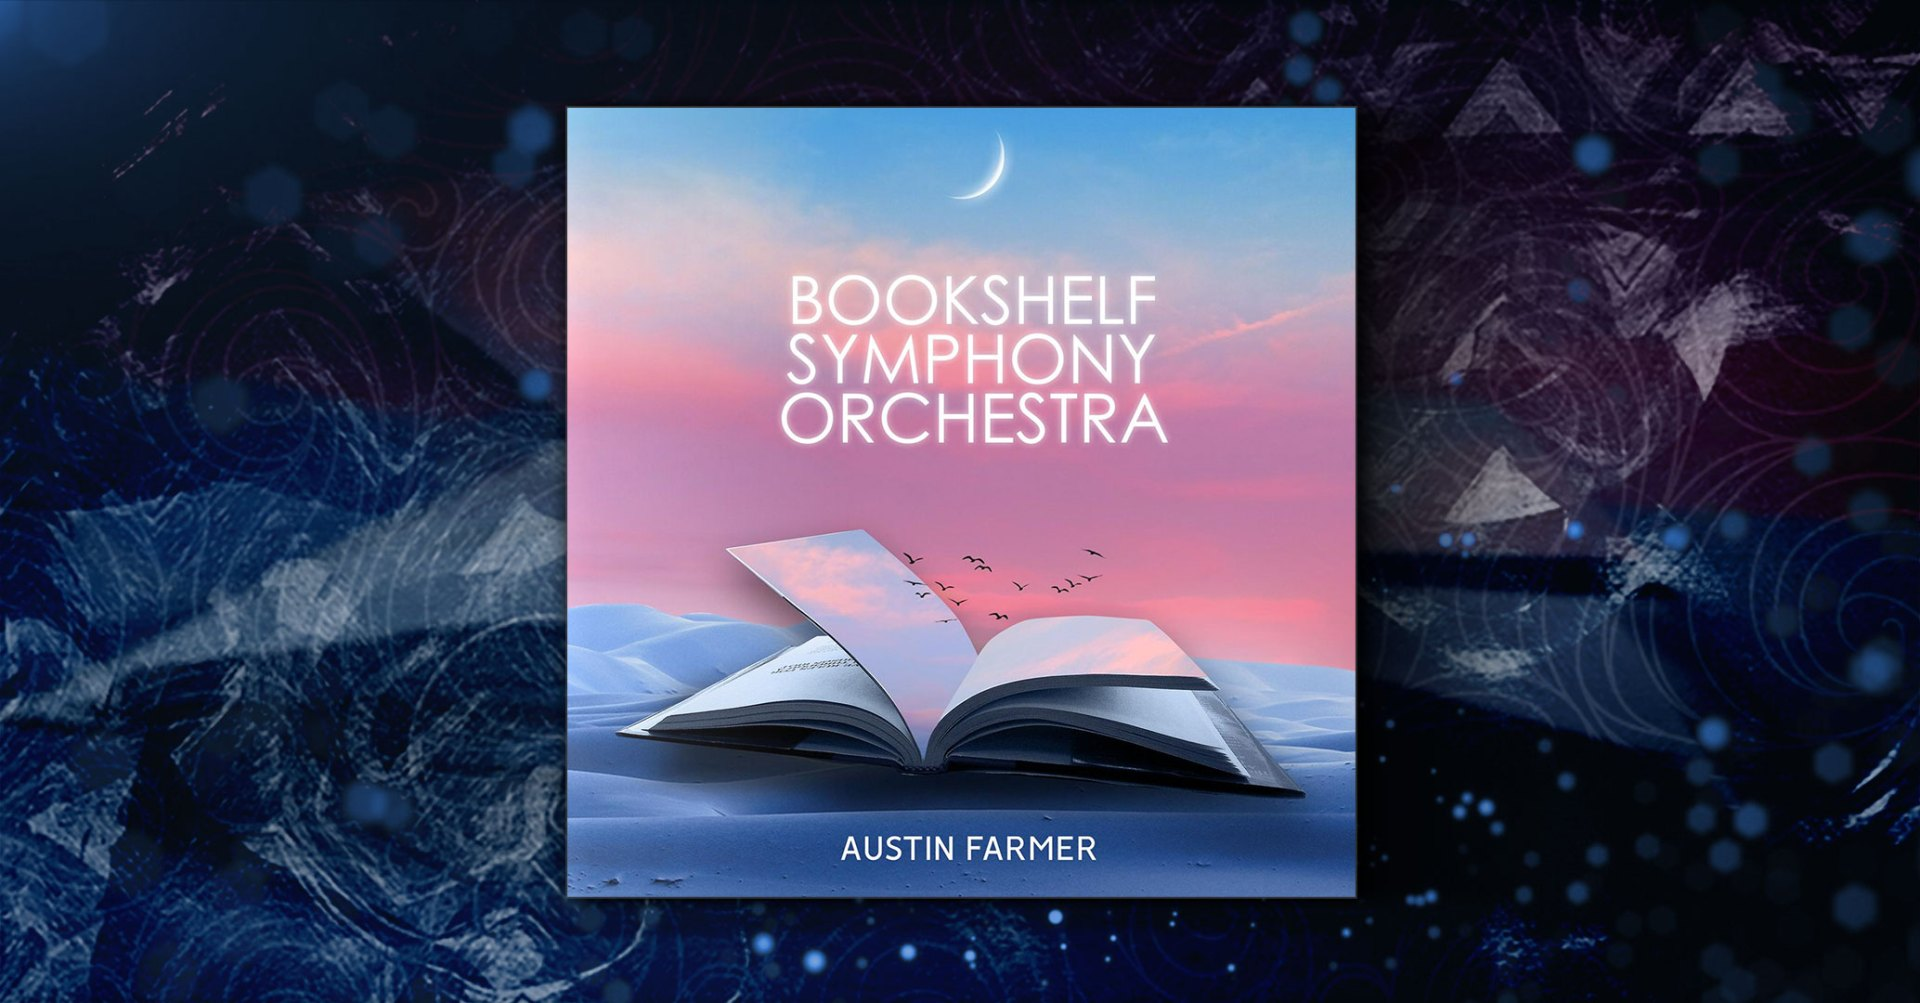 The Bookshelf Symphony Orchestra by Austin Farmer